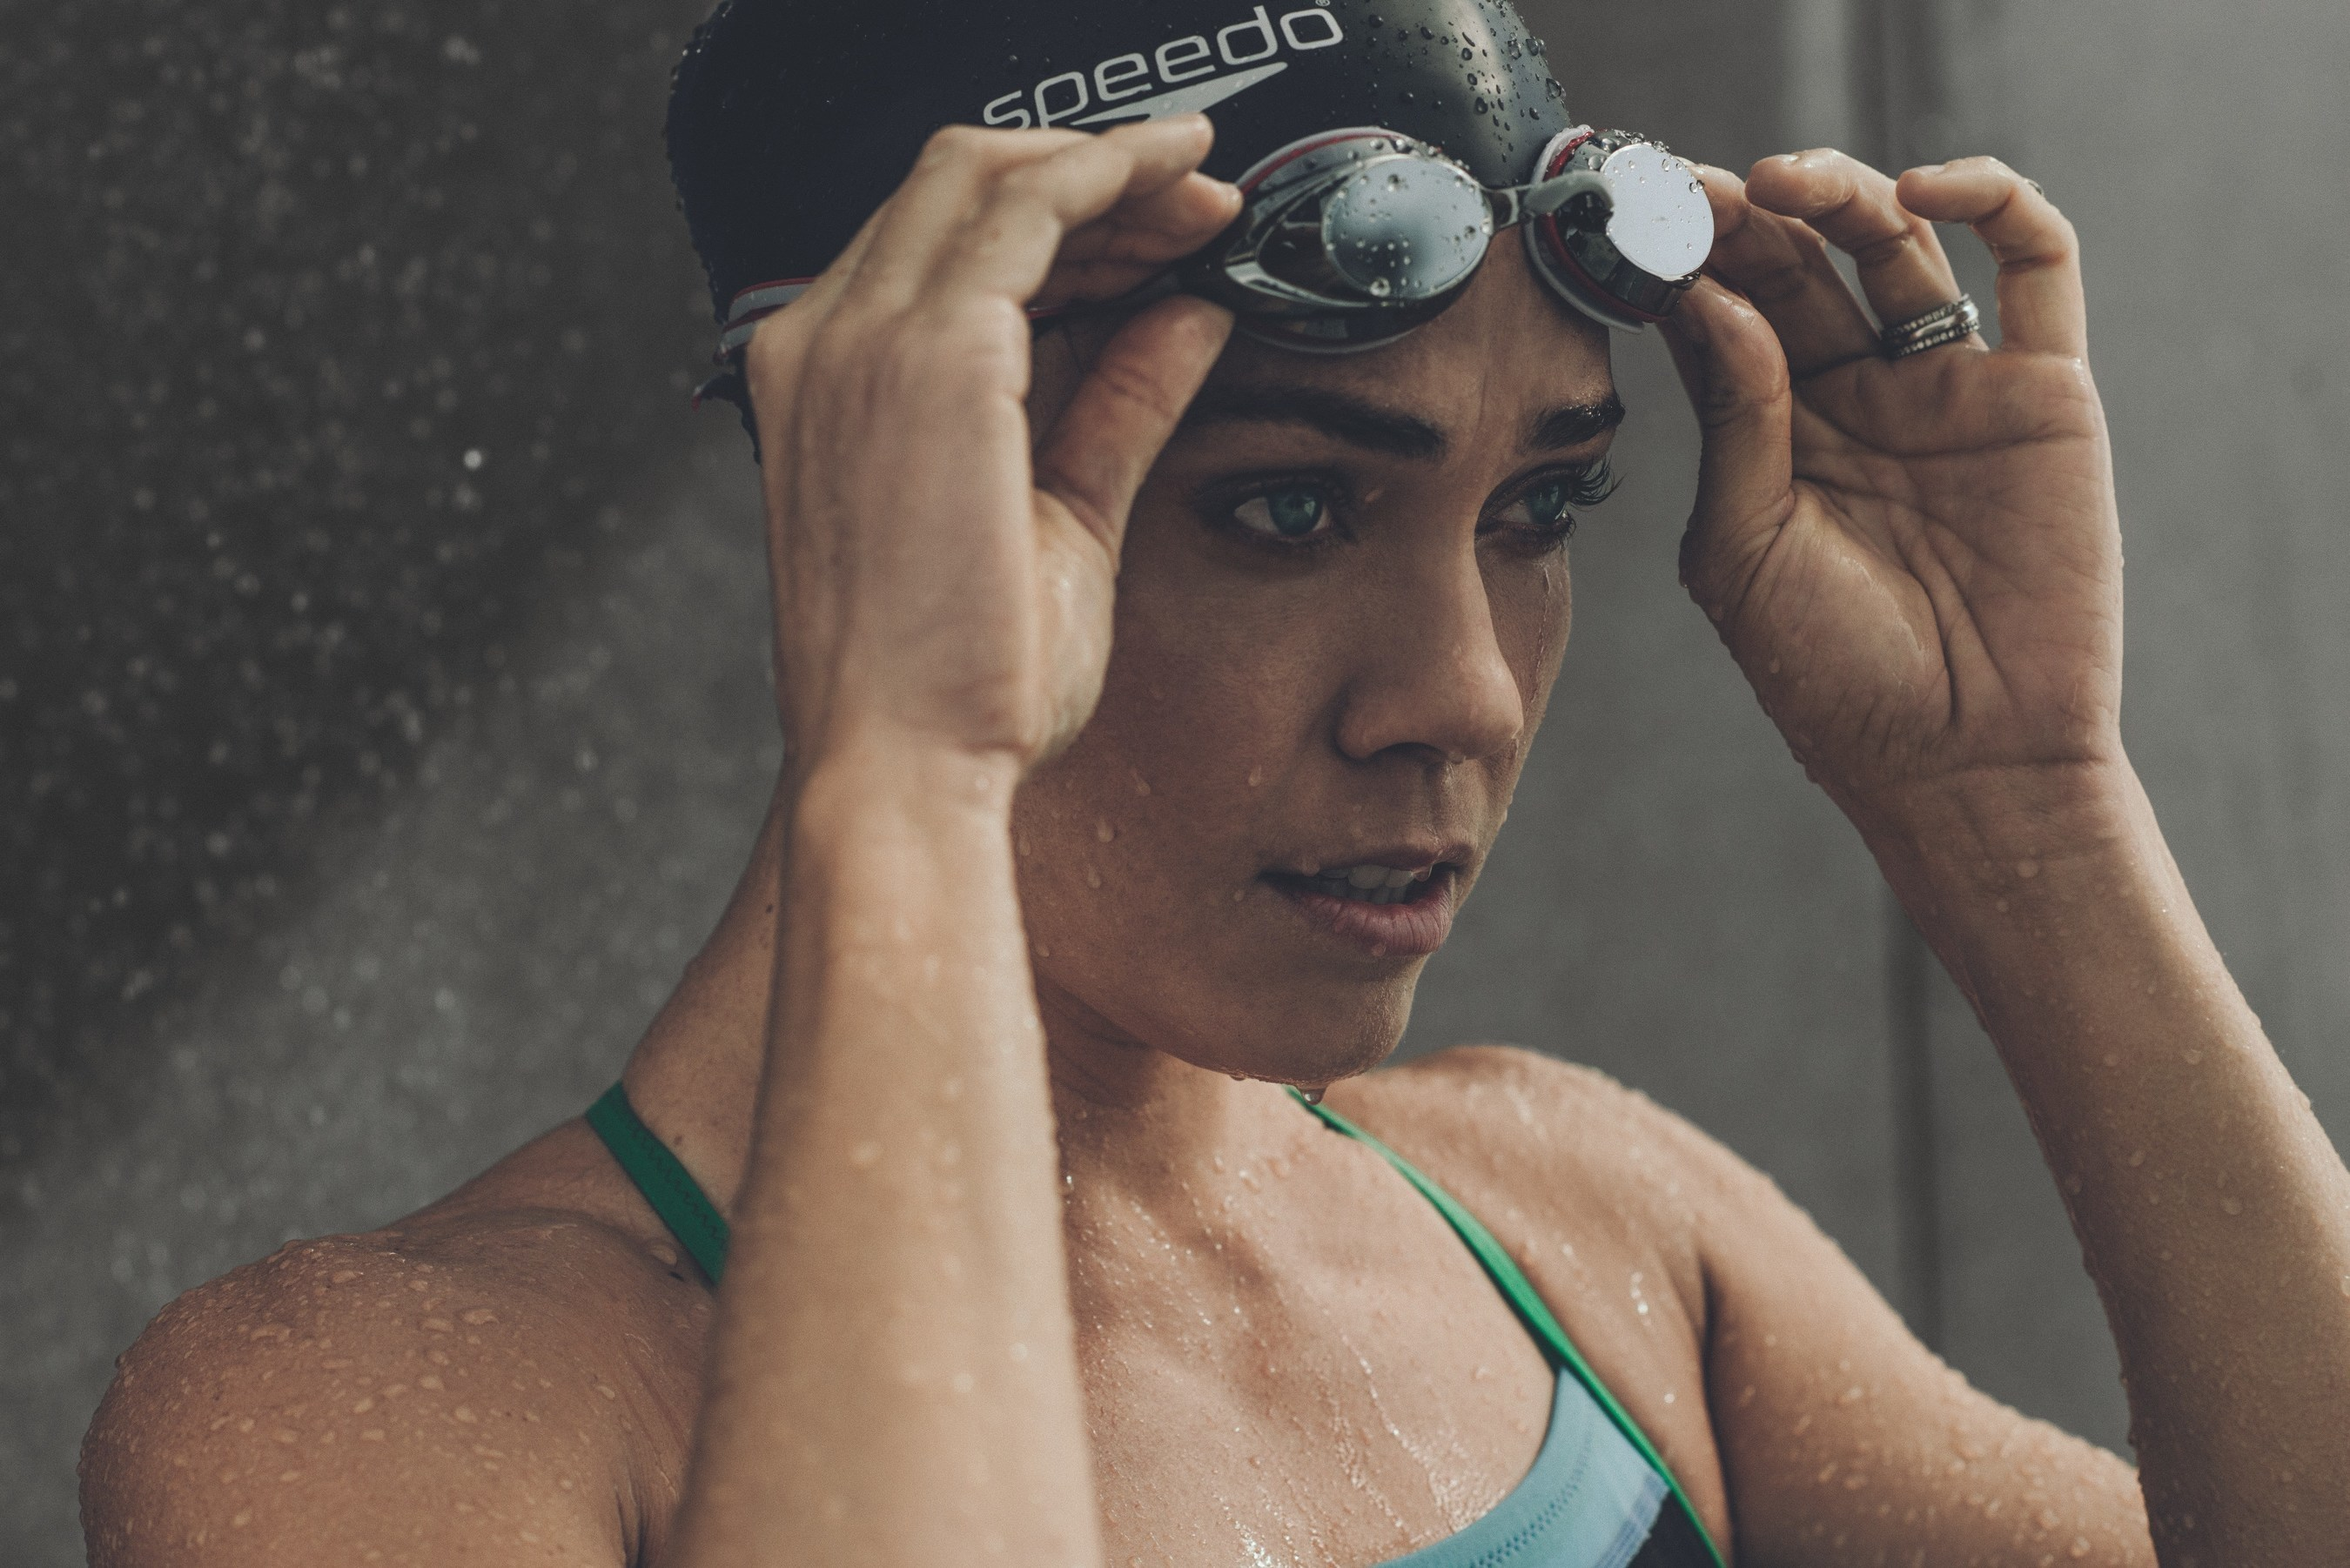 Natalie Coughlin and Other Champion Athletes Share Their Secrets on the Journey to Success, Including Snacking on Almonds